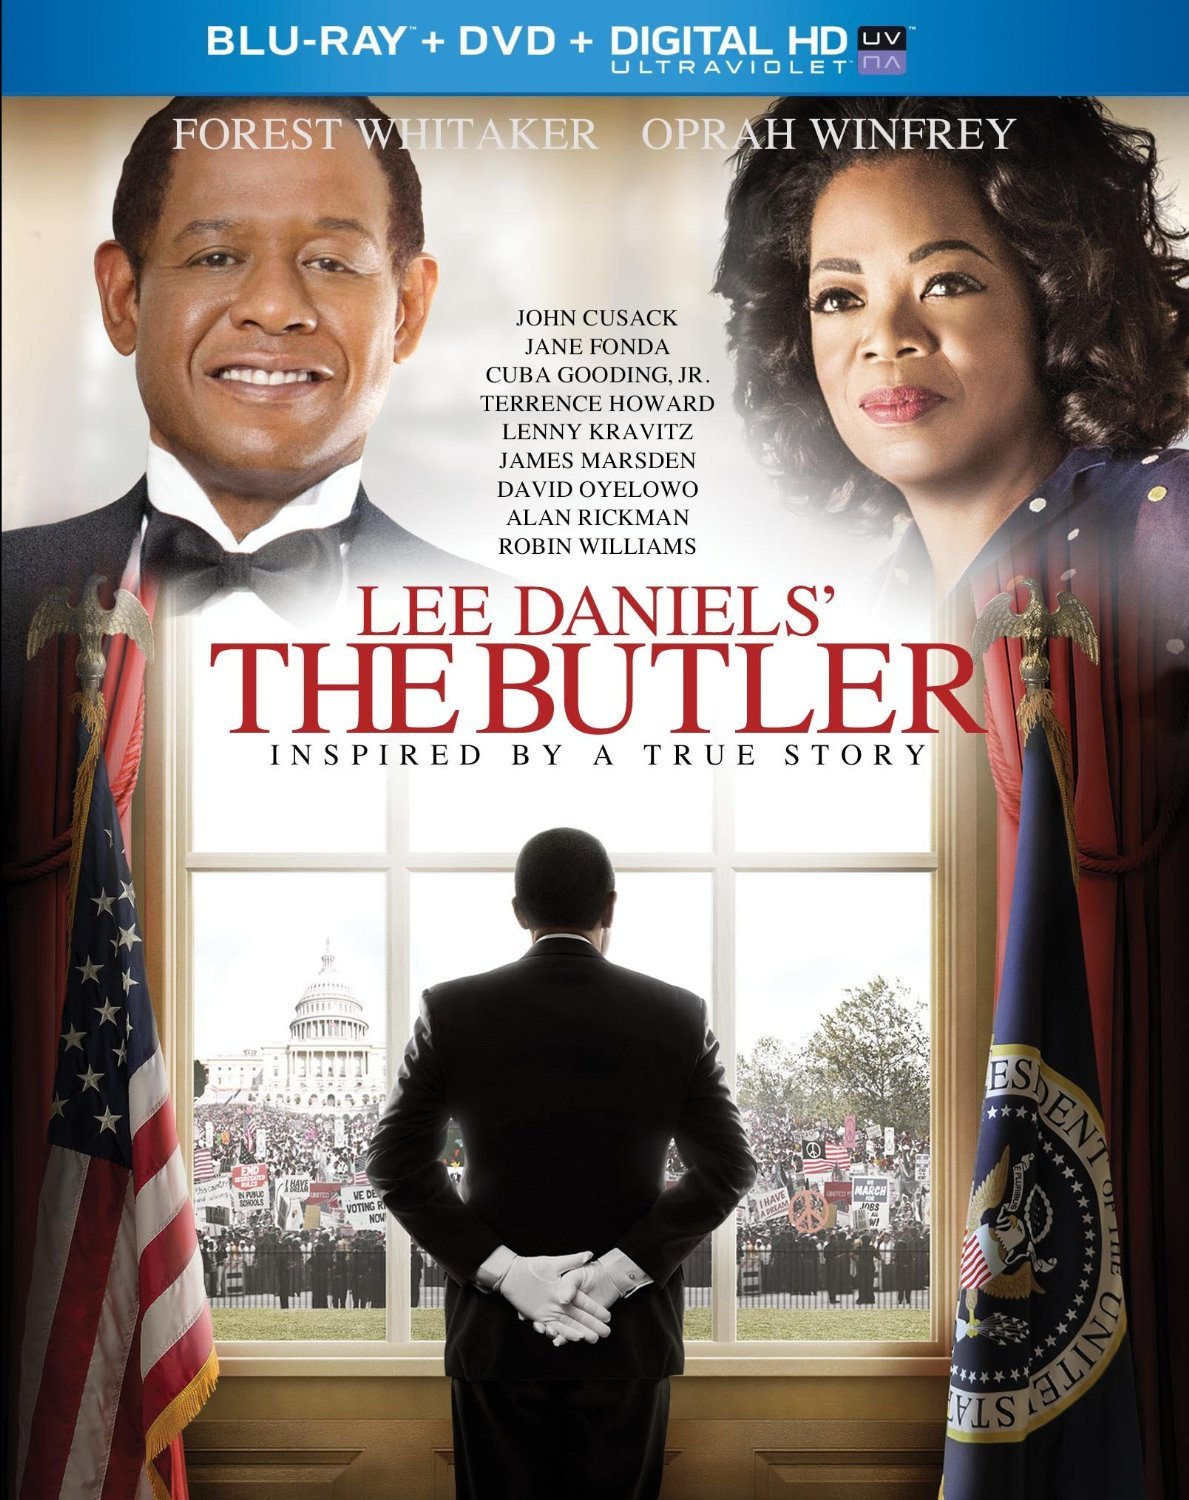 The Butler Blu-ray Review